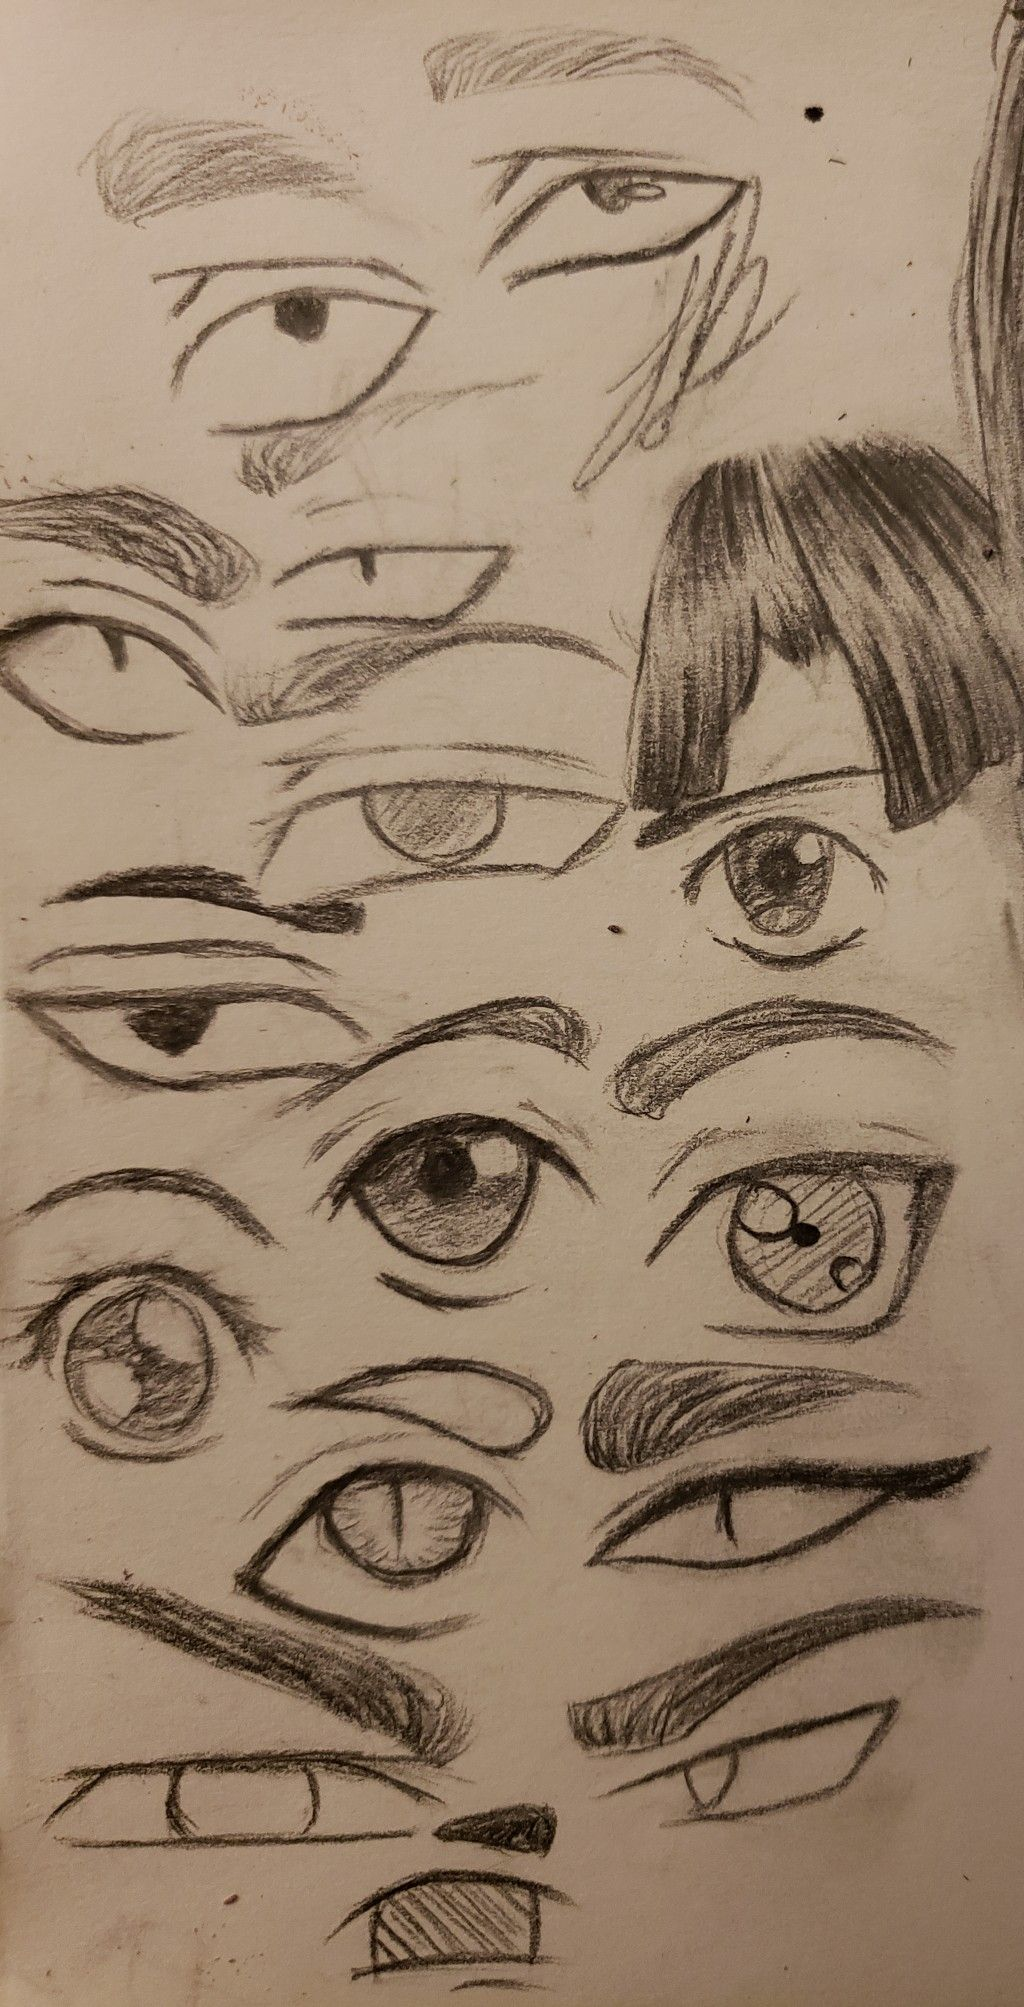 A Very Messy Quick Eye Exercise Because I Was Bored Hope It Helps How To Draw Anime Eyes Anime Eyes Eye Drawing